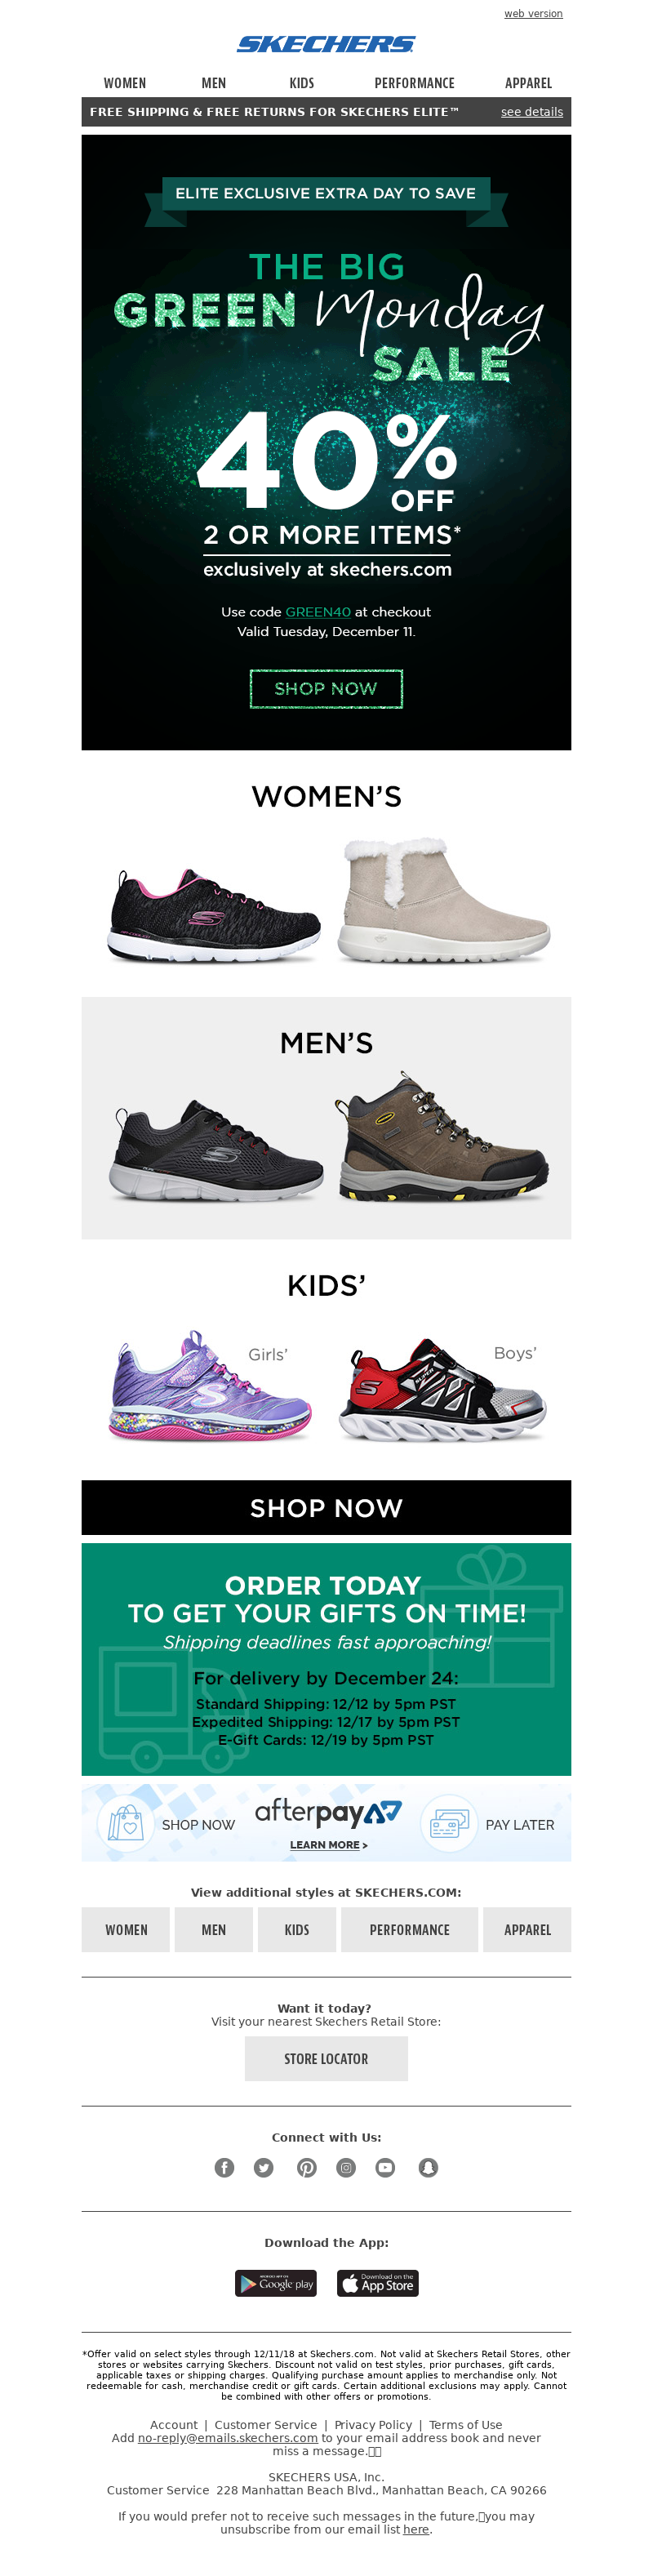 SKECHERS - Surprise! Extra Day for Guaranteed Delivery...